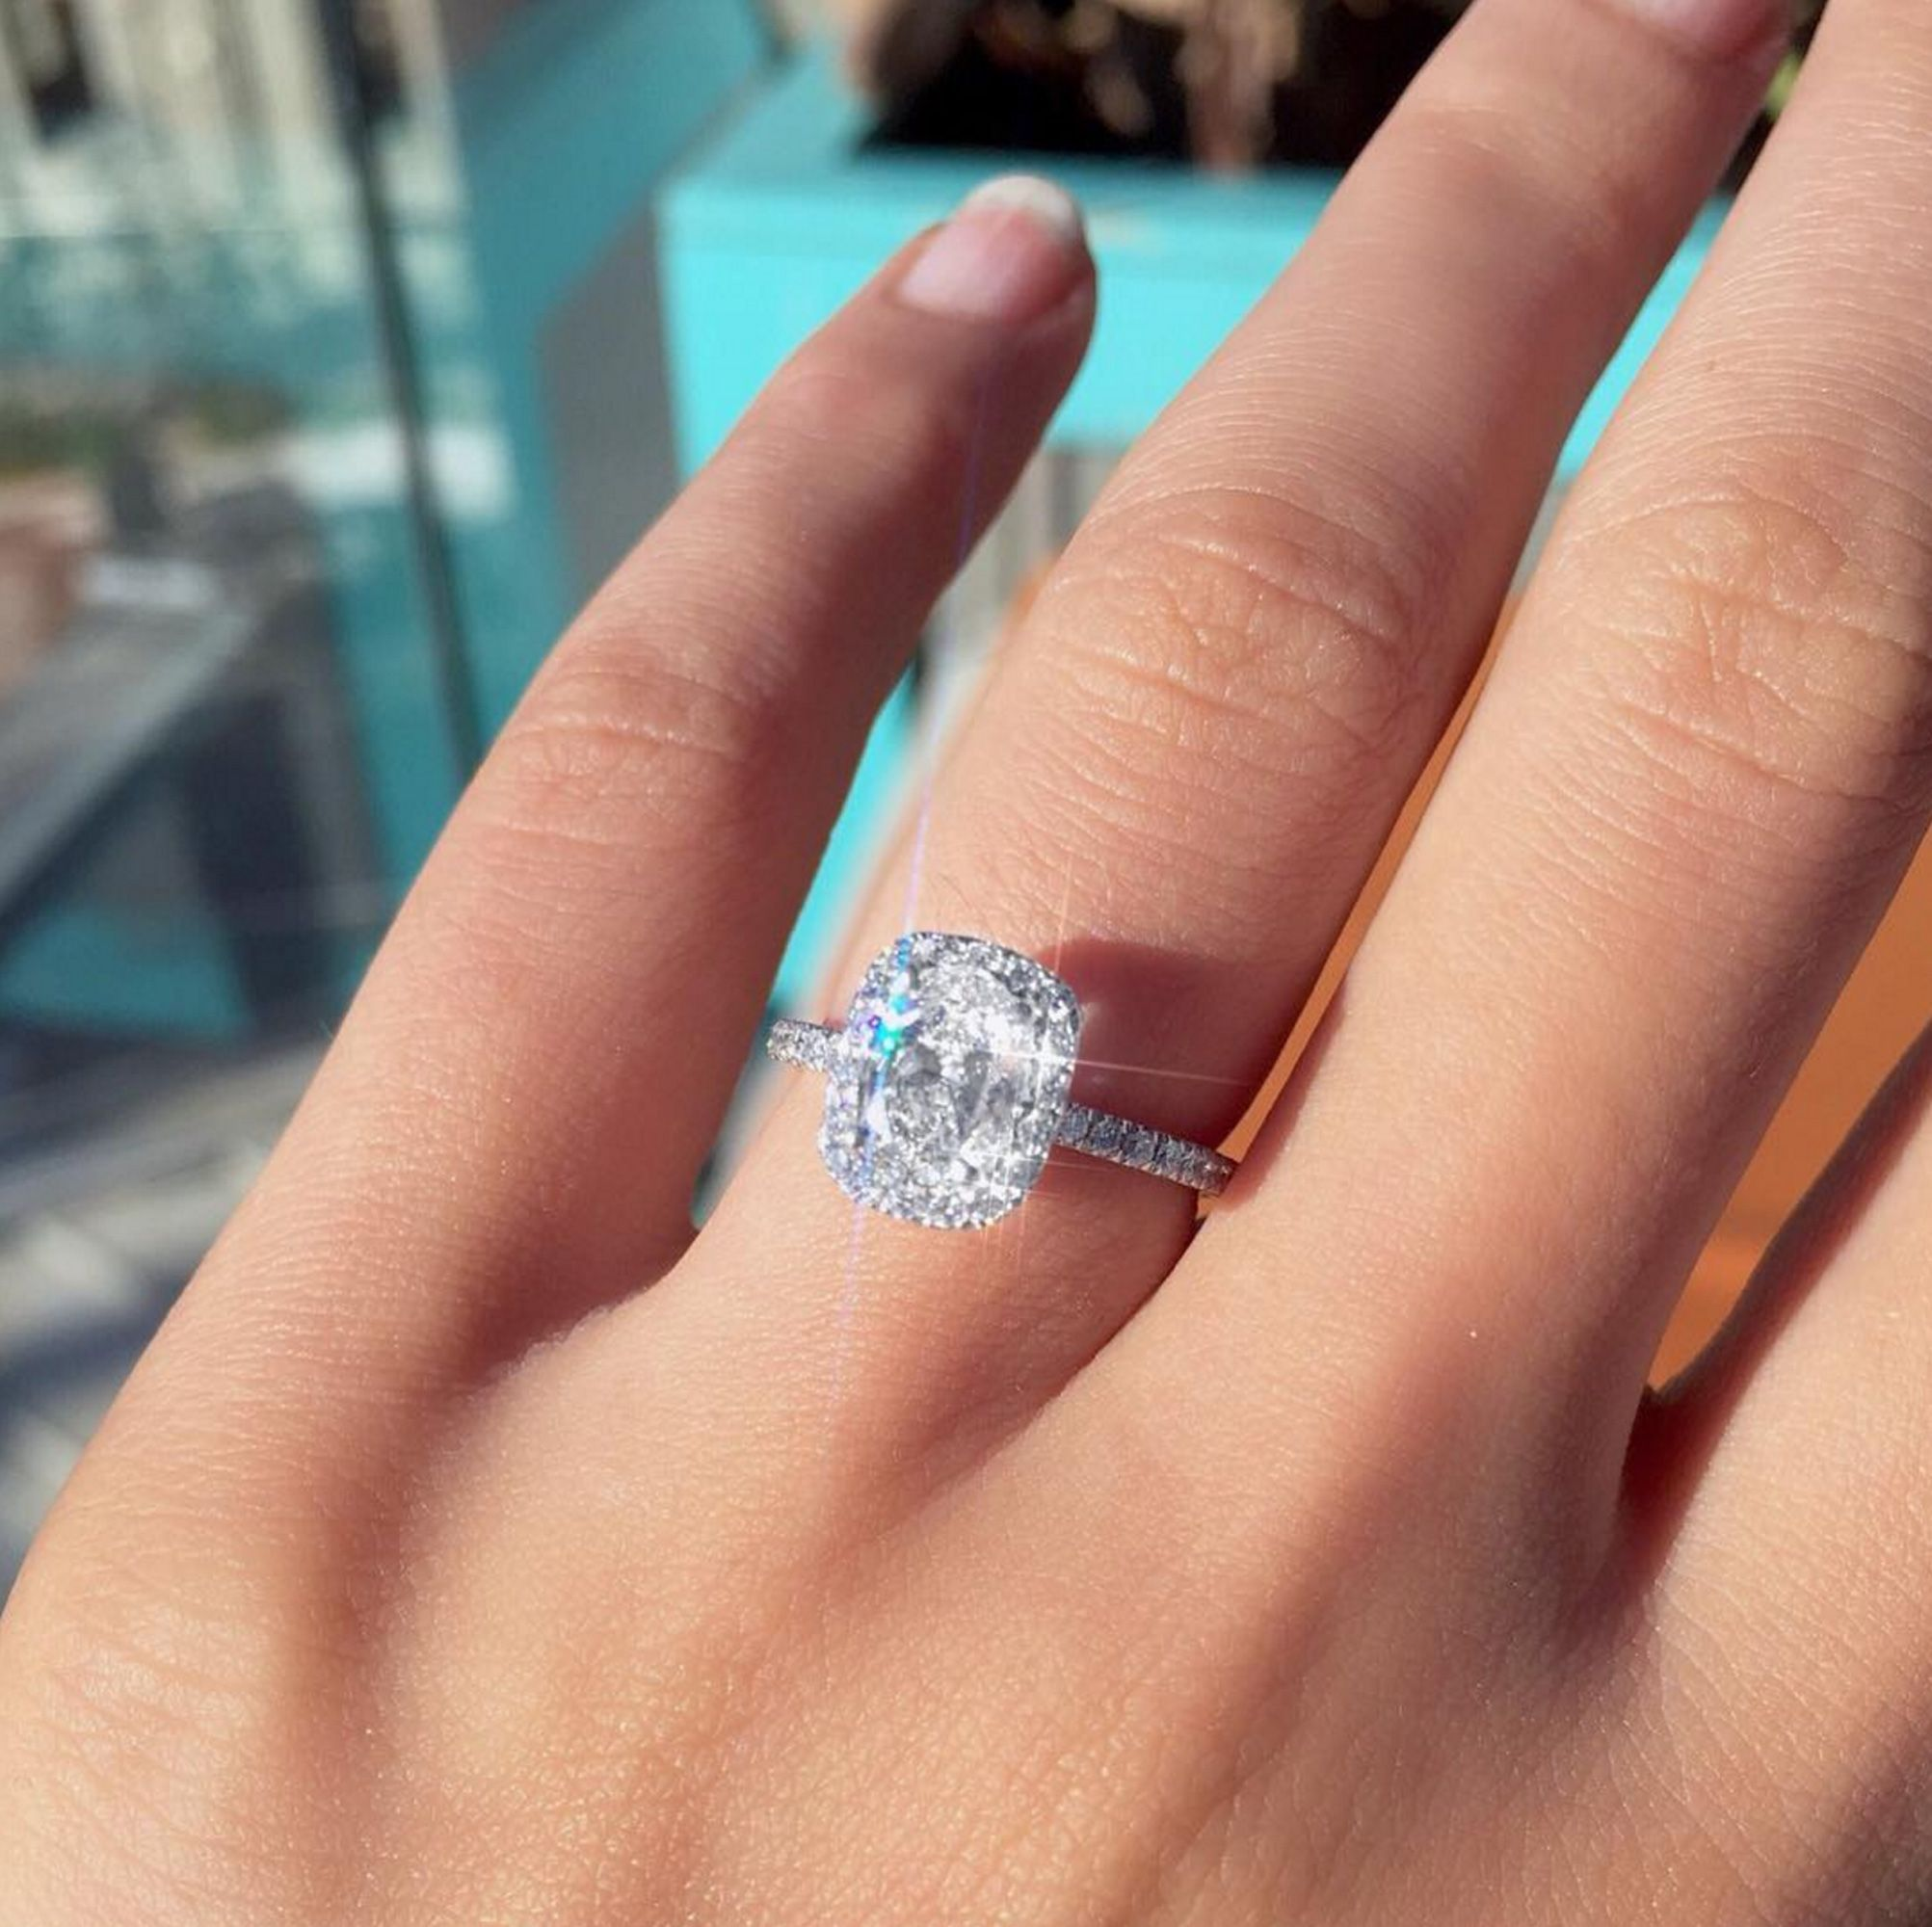 This Is How Much Brits Now Spend On Engagement Rings Refinery29uk Weddingrings Engagement Ring Cost Big Wedding Rings Round Diamond Engagement Rings